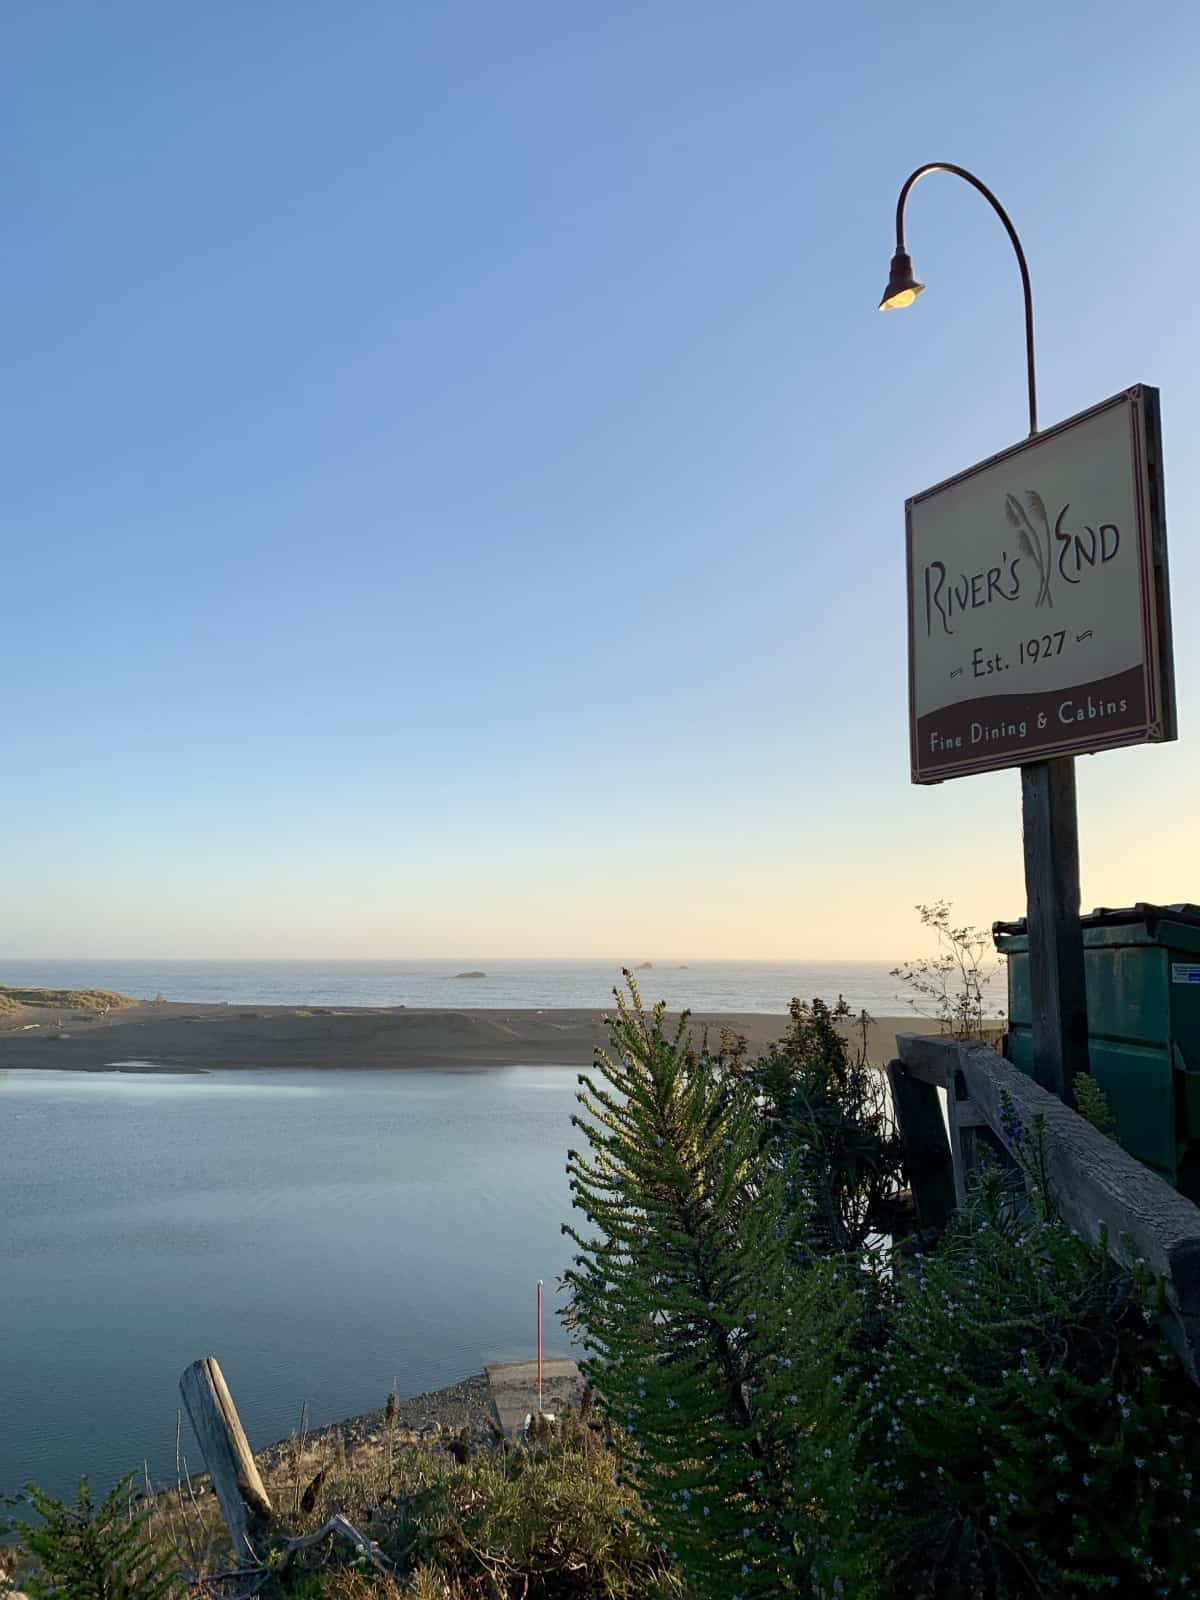 A lovely dinner at River's End is one of the best things to do on the Sonoma Coast, California - where to eat in Sonoma Coast